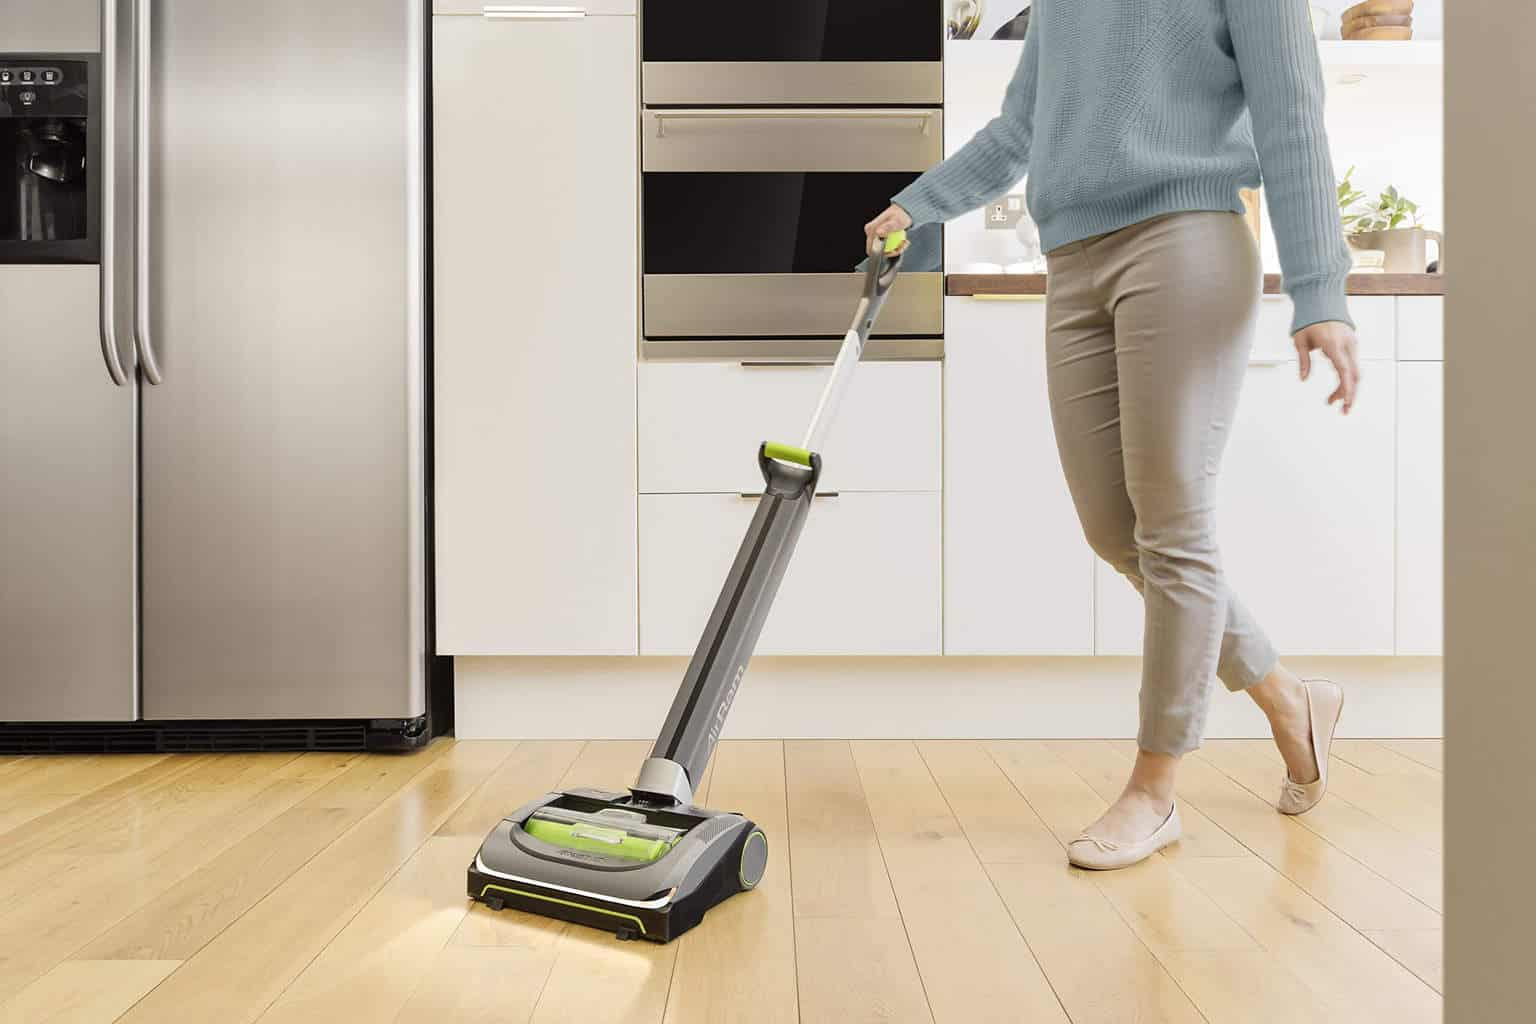 Things to Consider Before Buying a Hardwood Floor Cleaner